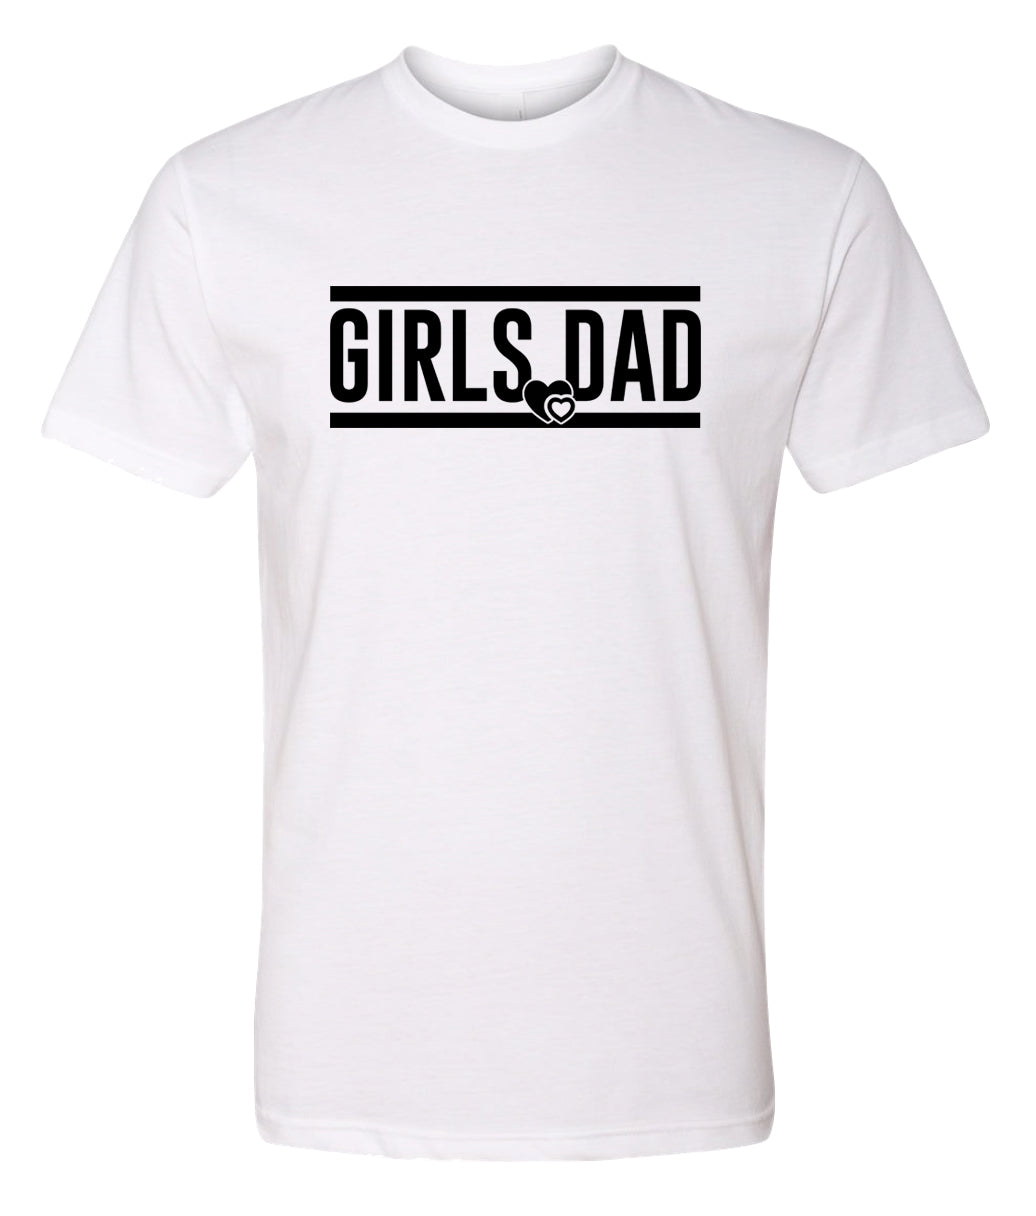 girls dad t-shirt